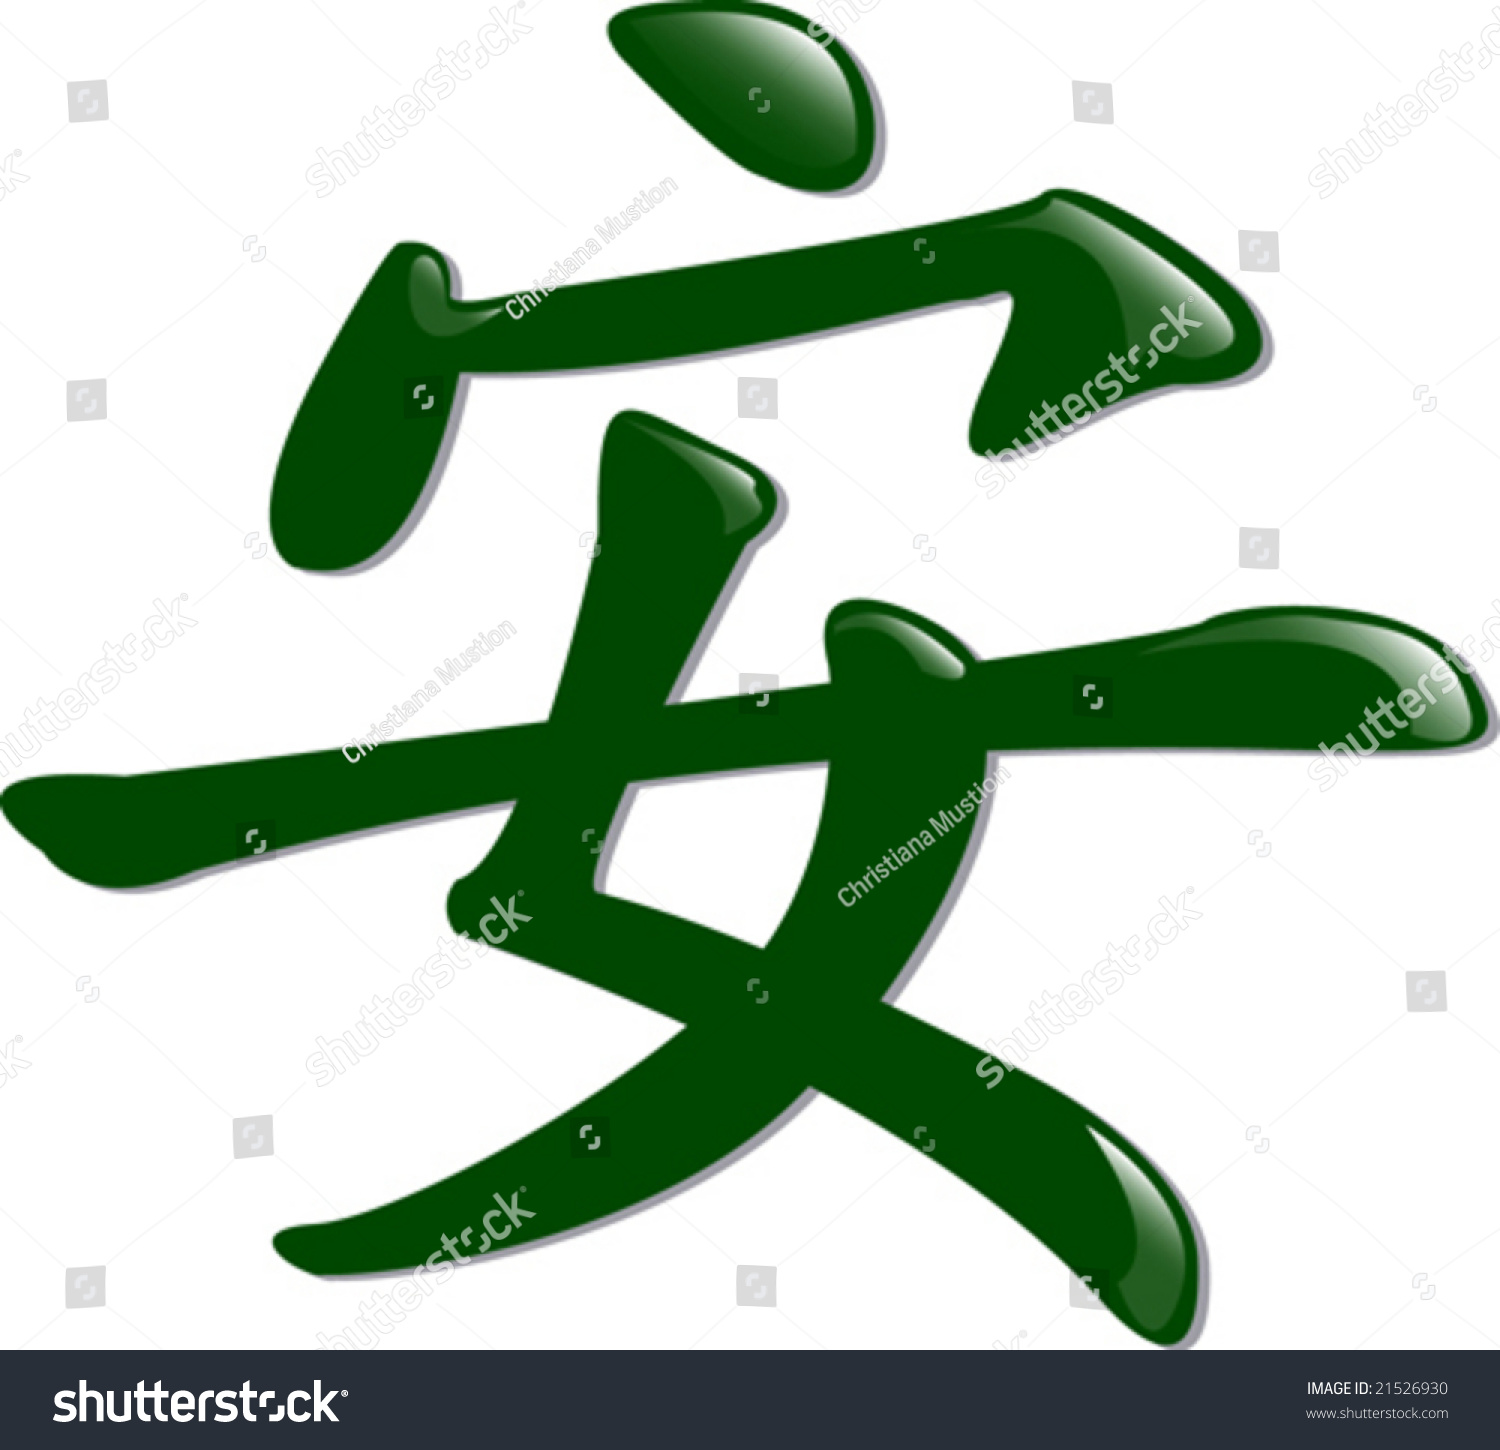 Shiny chinese symbol serenity stock vector 21526930 shutterstock shiny chinese symbol for serenity biocorpaavc Gallery